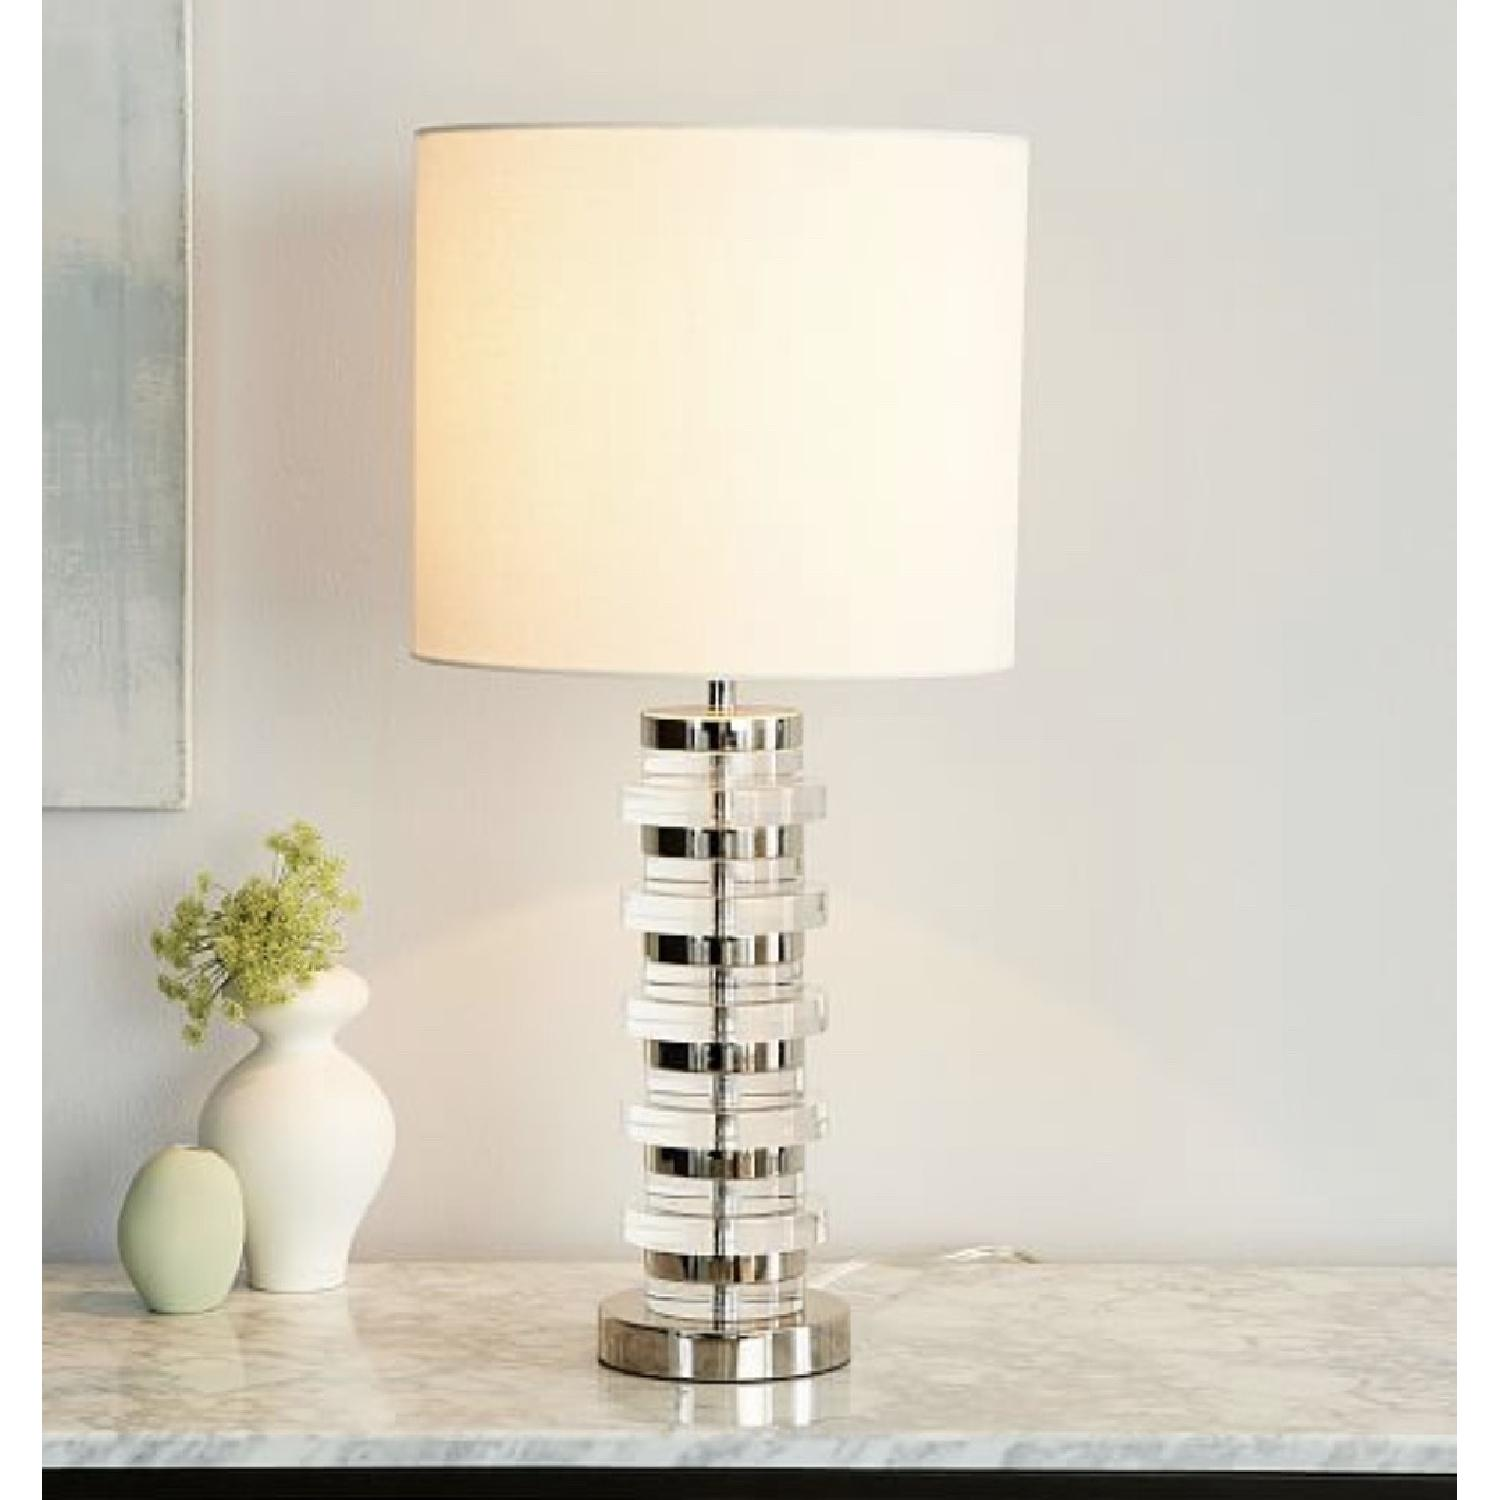 West Elm Clear Disk Table Lamp in Polish Nickel w/ USB - image-3